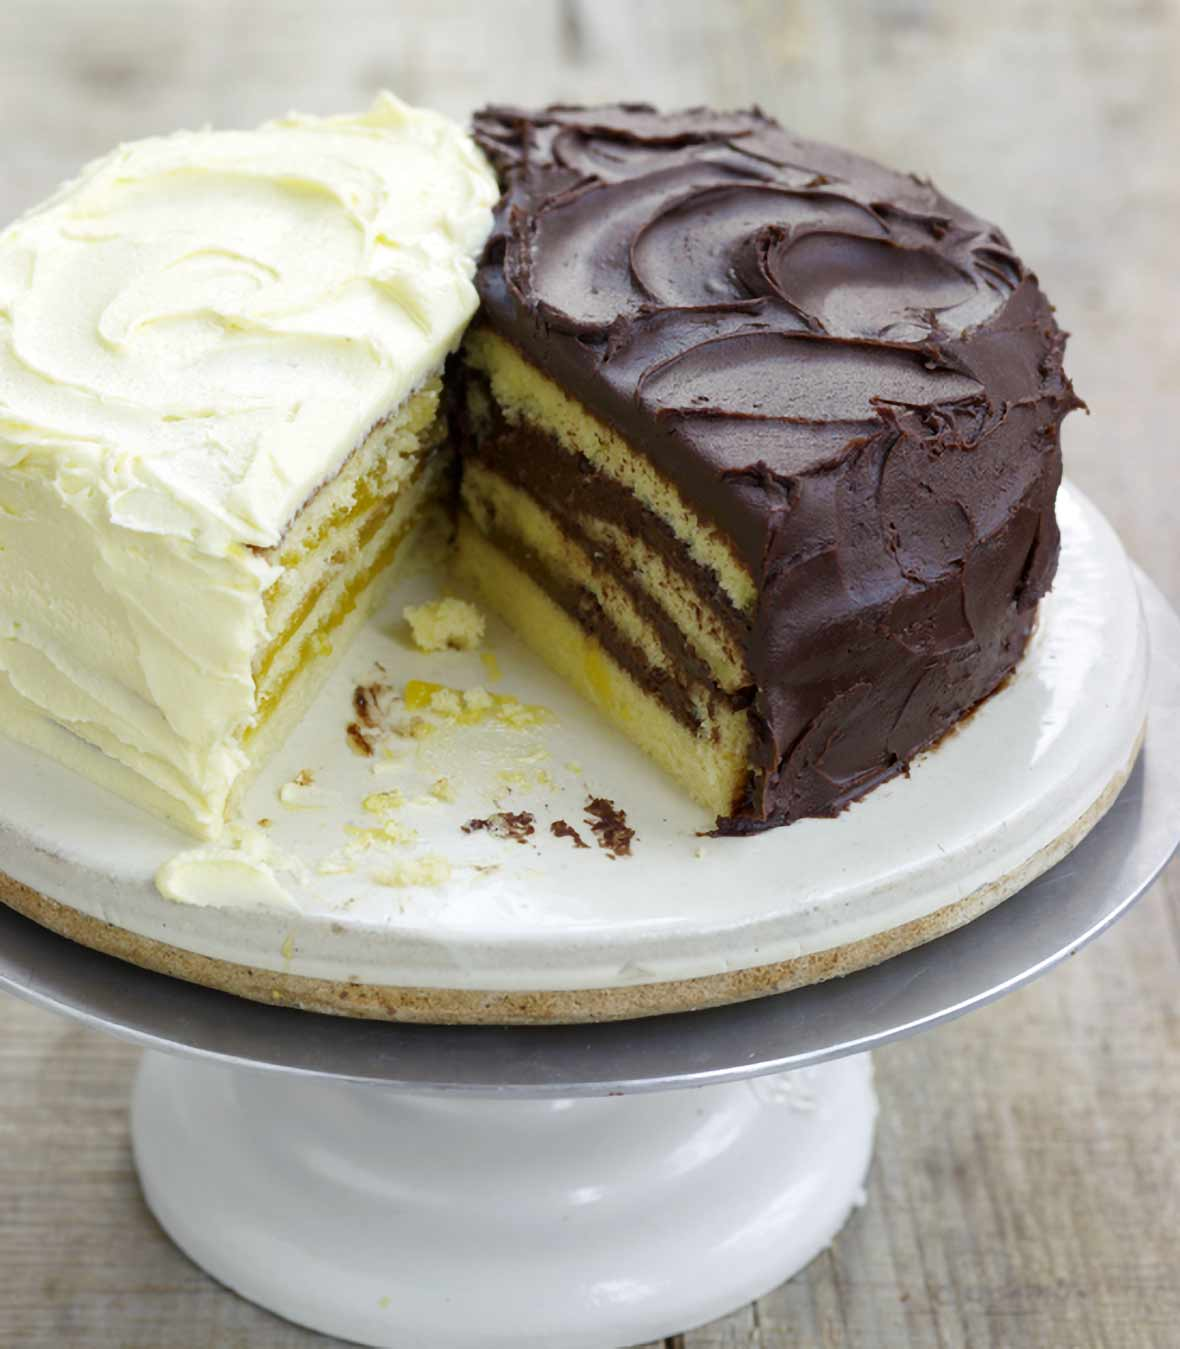 Cake stand with a half of a lemon Doberge layer cake and a half of a chocolate Doberge layer cake